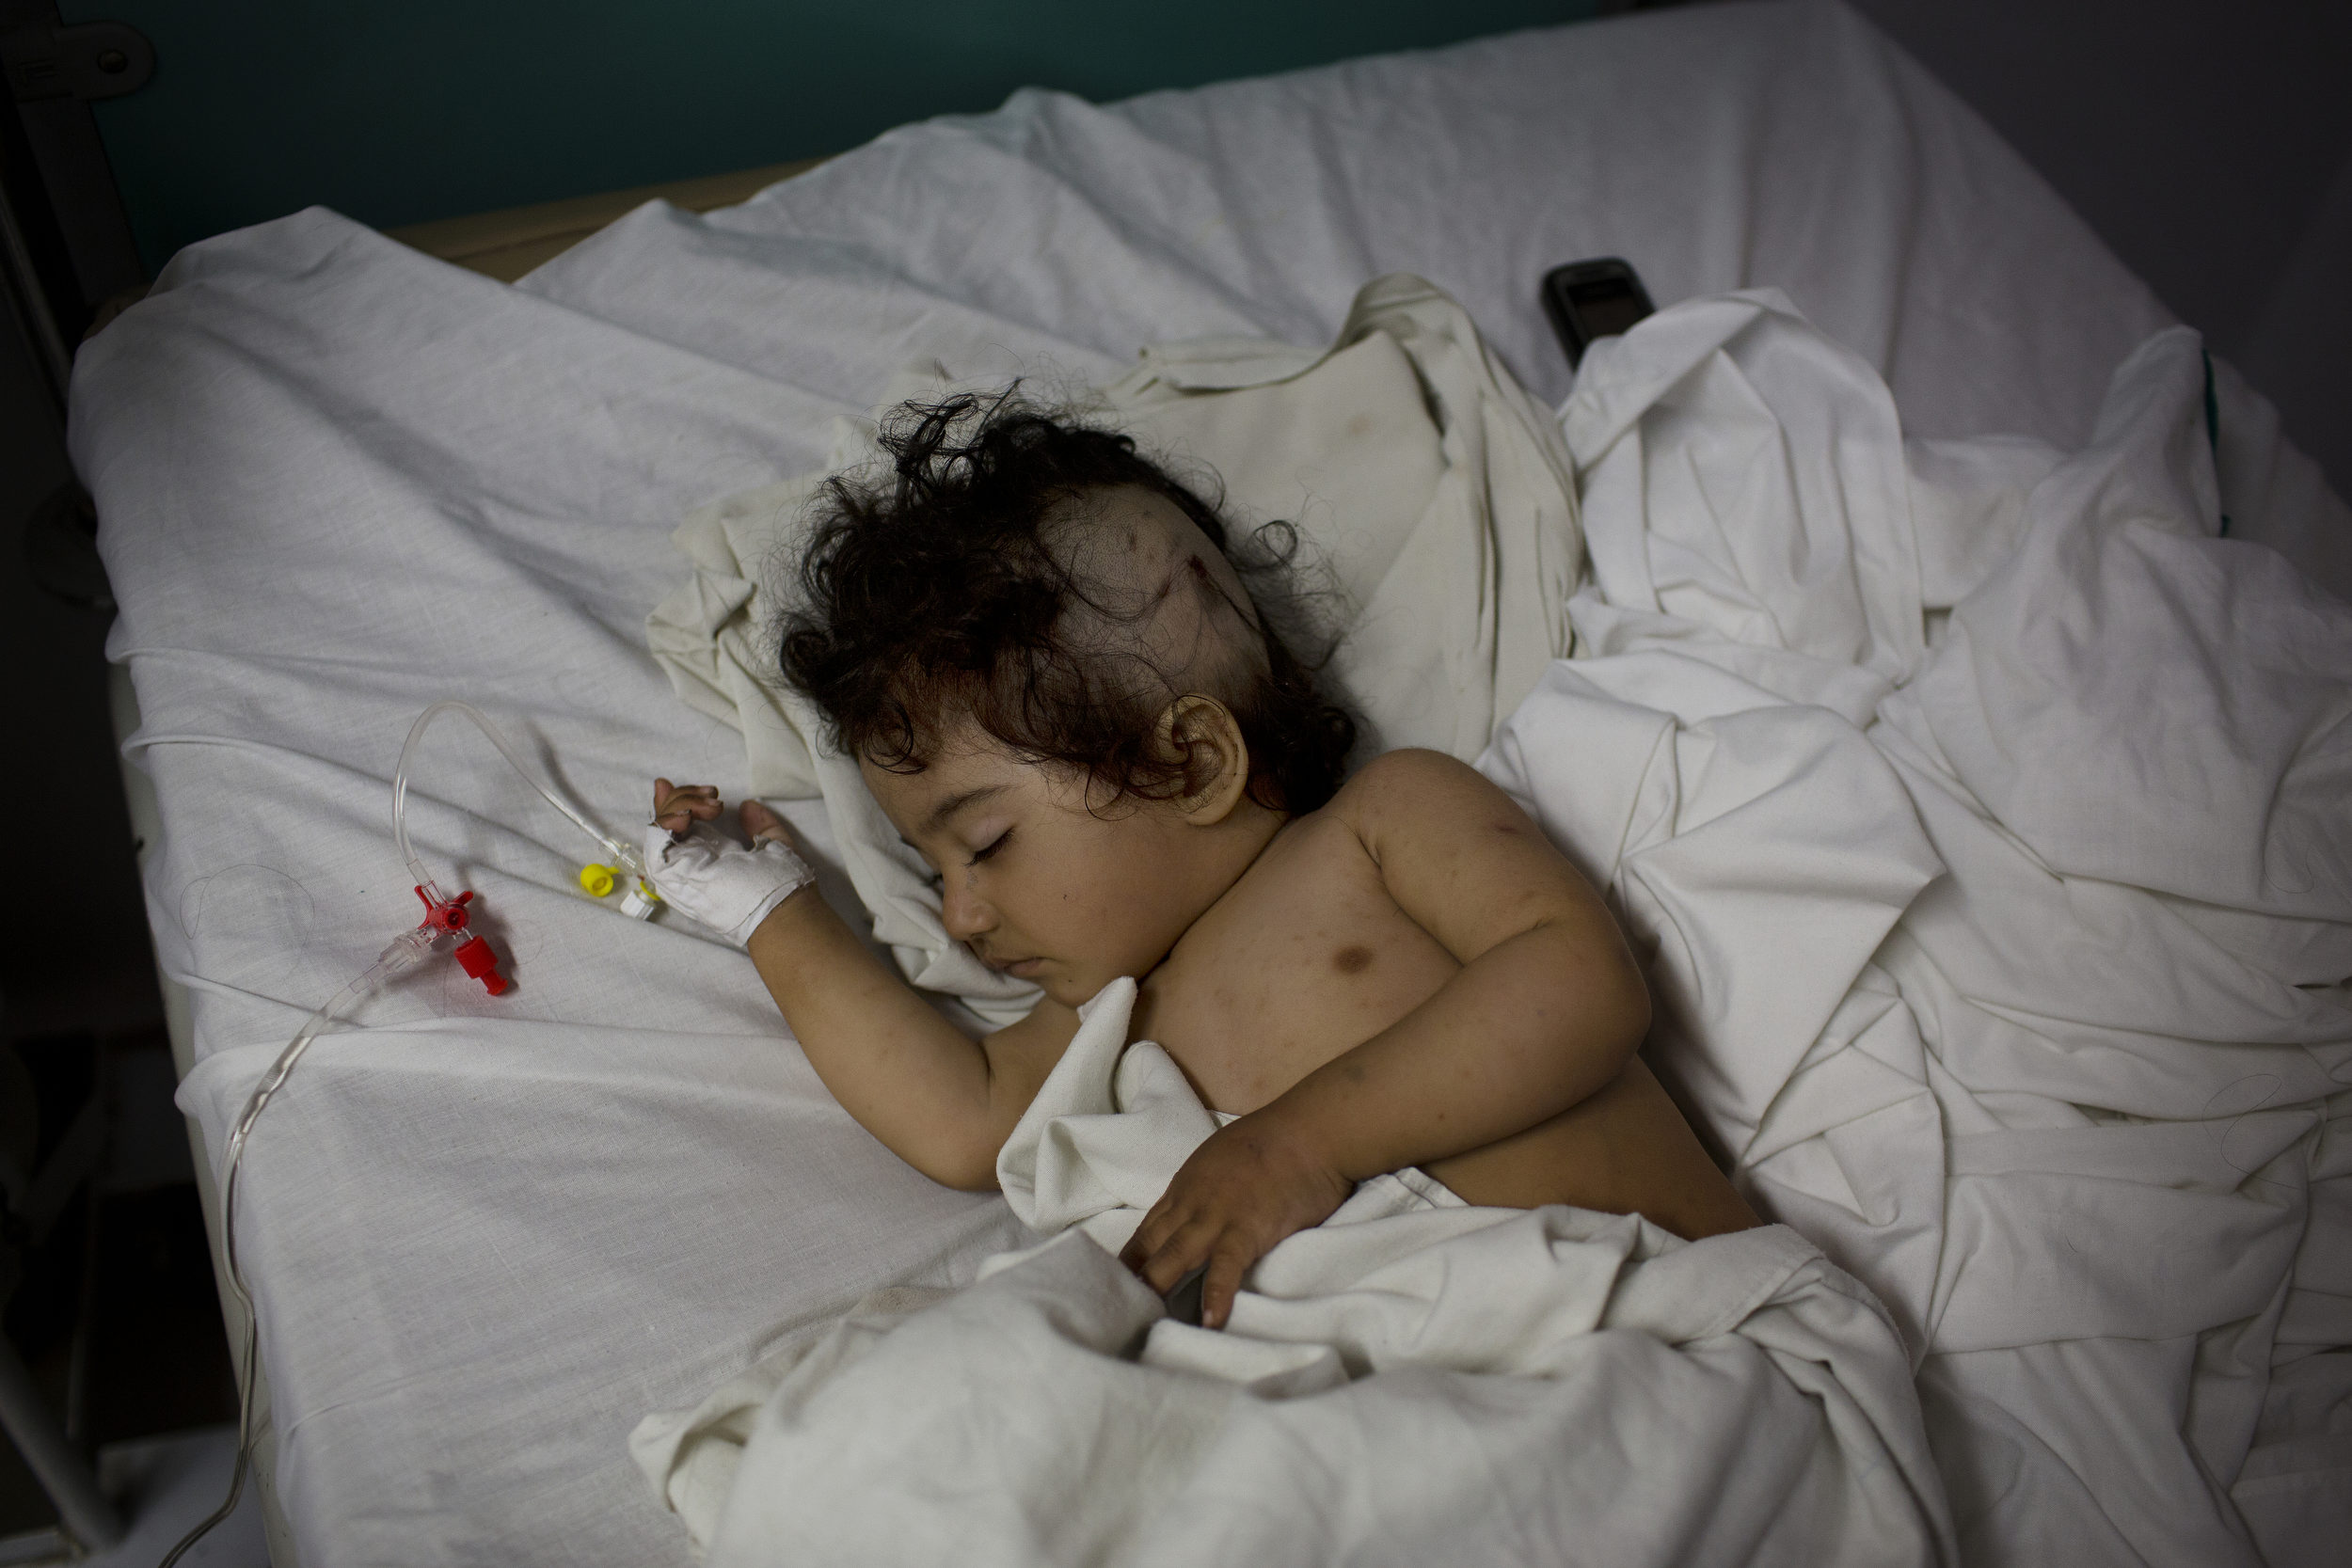 Nasirullah, 1, who suffered a shrapnel injury to her head,sleeps in the sub-ICU.